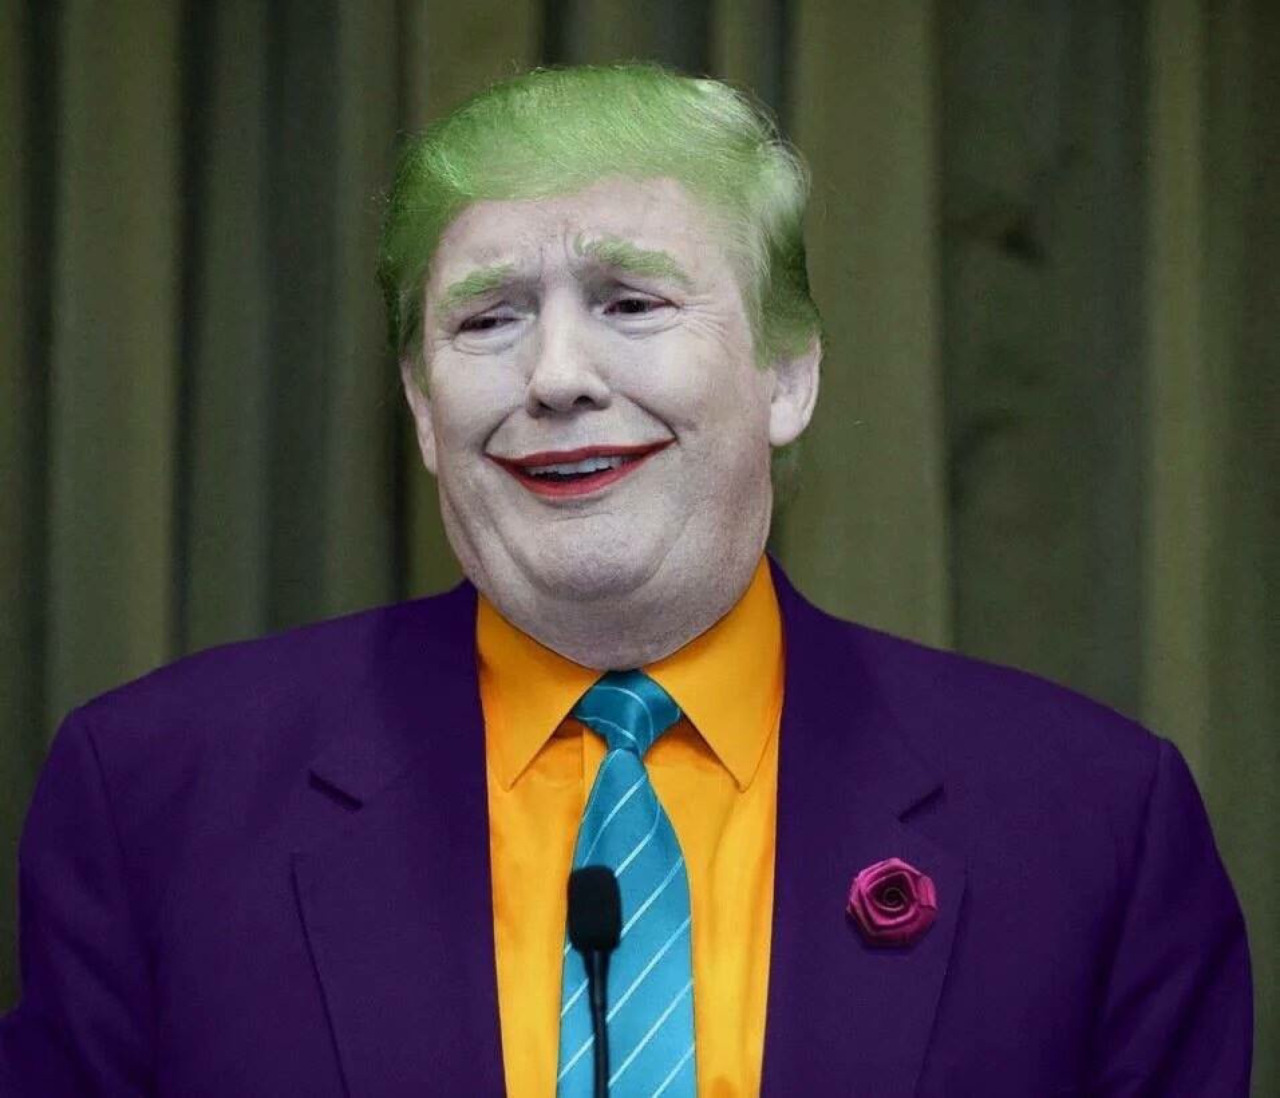 High Quality Donald Trump As A Joker Blank Meme Template